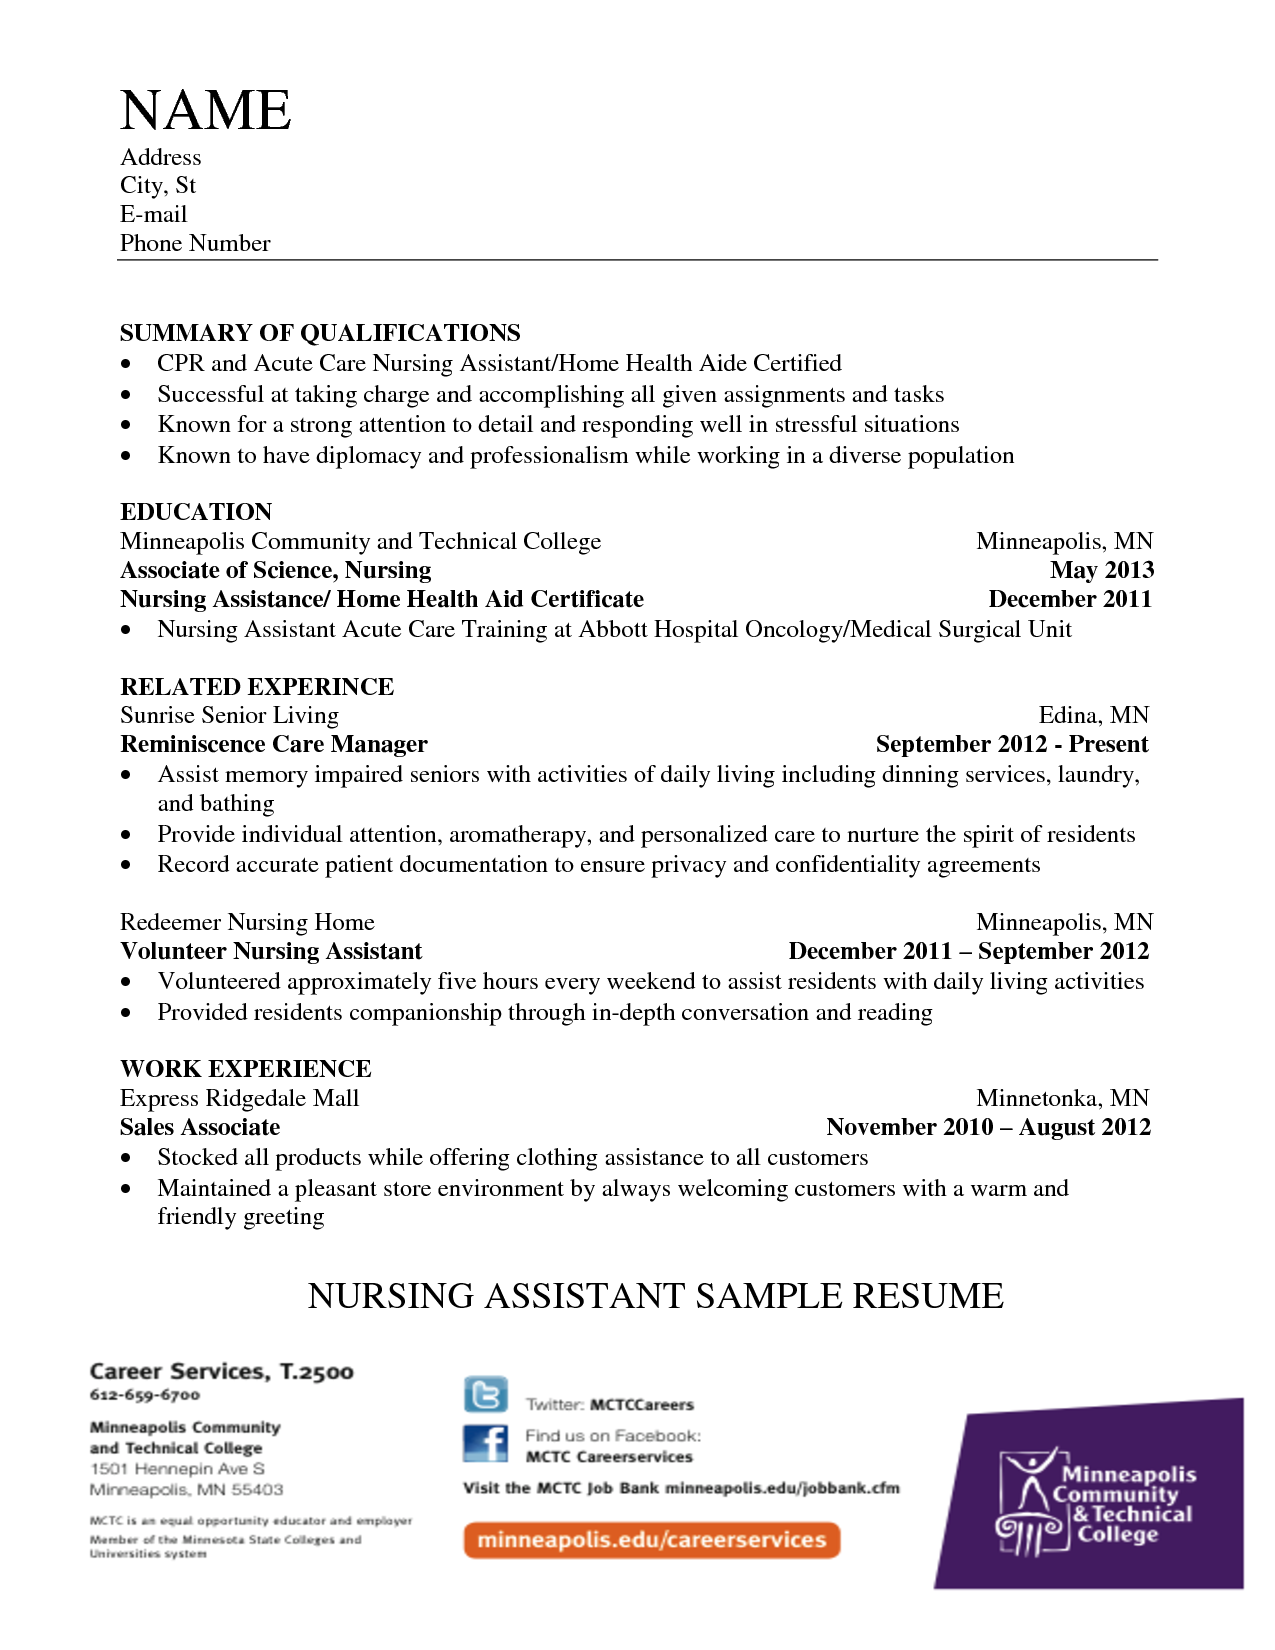 resume Nursing Assistant Resume home health nursing assistant resume sample pinterest sample